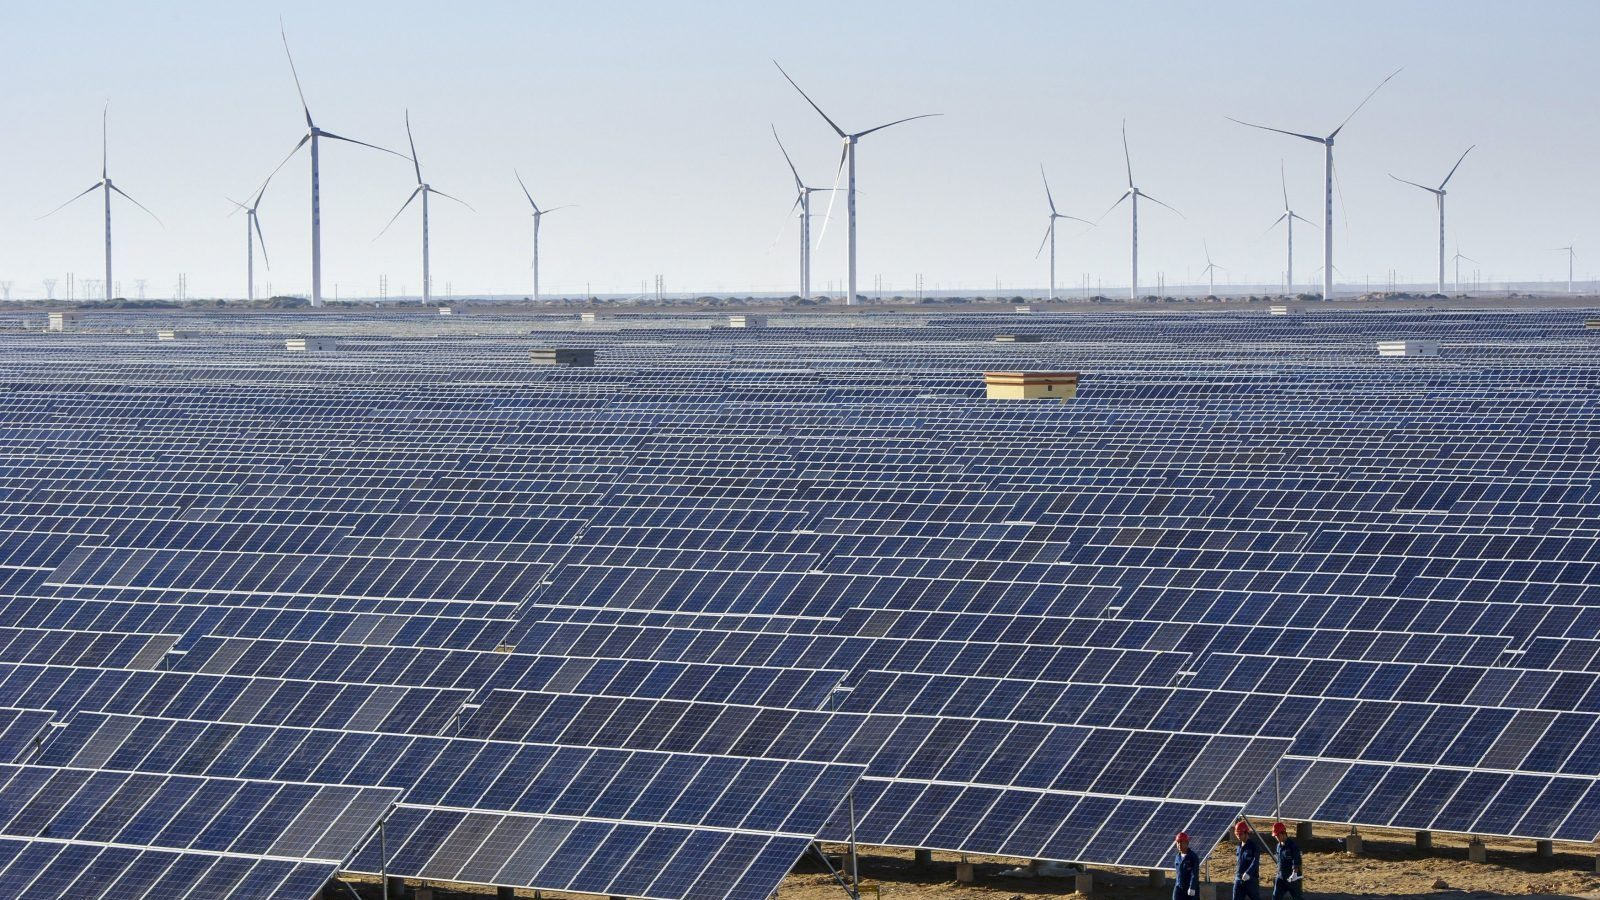 Workers walk past solar panels and wind turbines (rear) at a newly-built power plant in Hami, Xinjiang Uighur Autonomous Region, China, September 17, 2015. China's power consumption in August rose 1.9 percent from a year earlier to 512.4 billion kilowatt-hours (kWh), figures from the country's National Energy Administration (NEA) showed on Tuesday. Picture taken September 17, 2015. REUTERS/Stringer CHINA OUT. NO COMMERCIAL OR EDITORIAL SALES IN CHINA  - GF10000218074